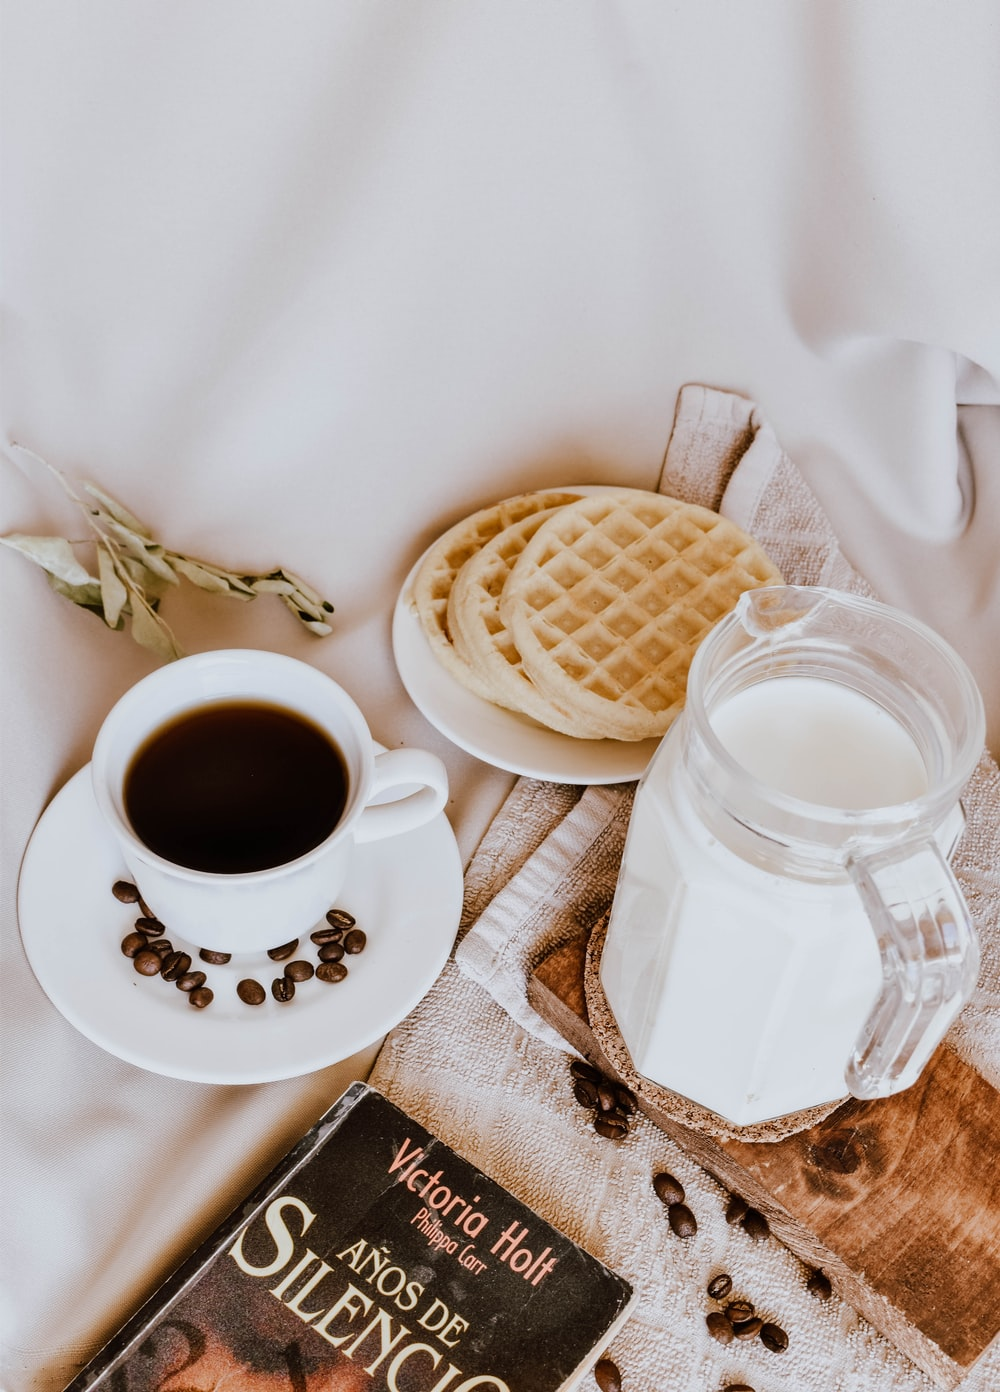 white ceramic mug with coffee beside white ceramic saucer with brown and white cookies